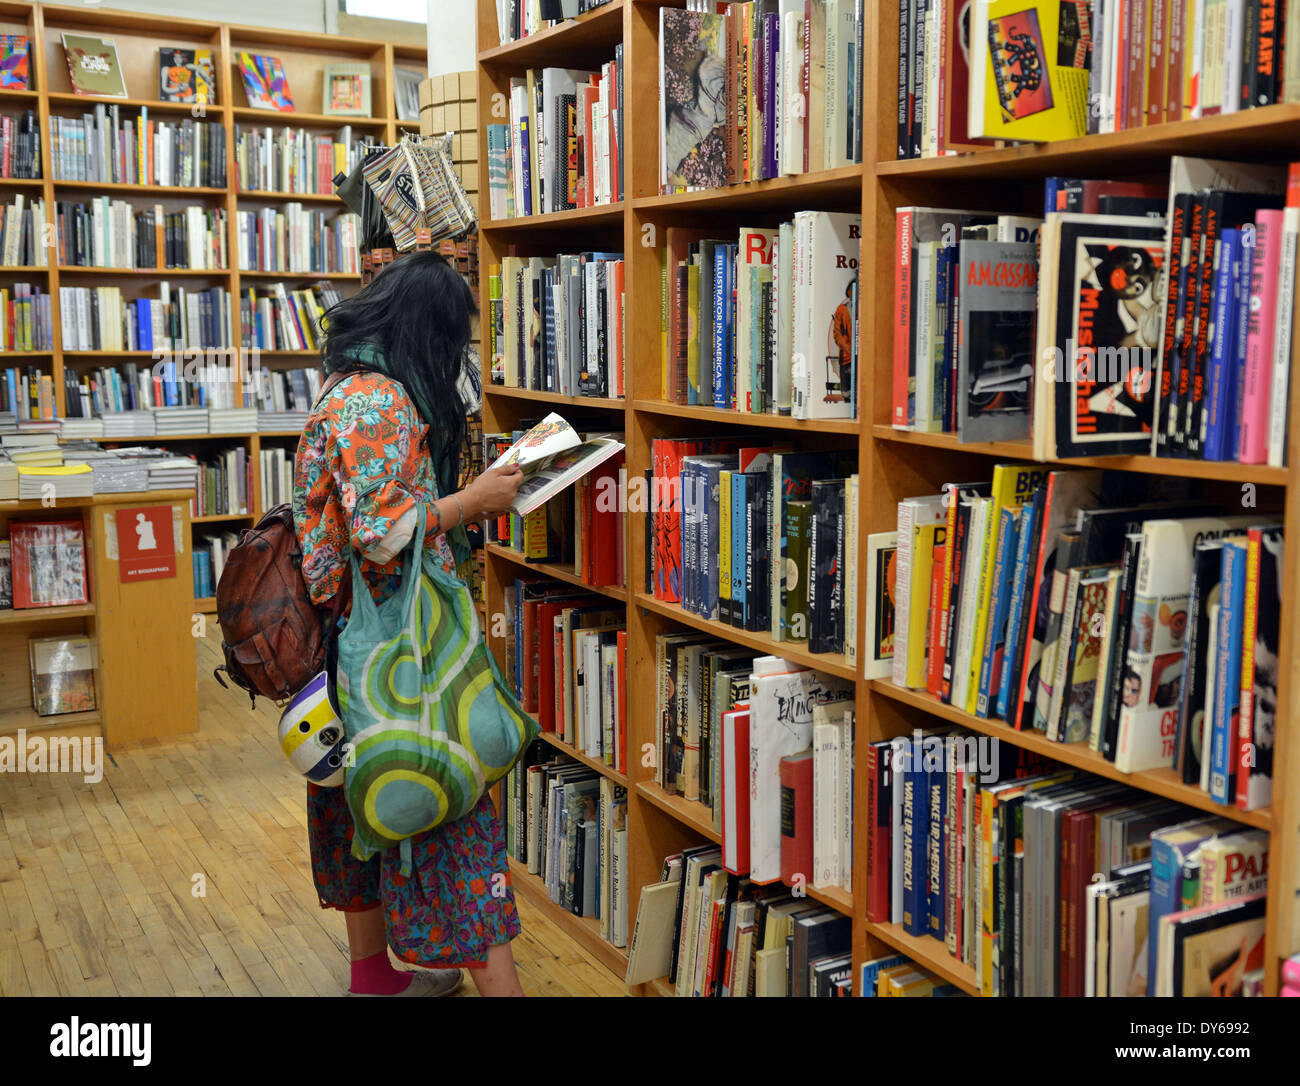 A woman in colorful clothing shopping for books at the Strand Bookstore on Broadway in Greenwich Village, Manhattan, - Stock Image